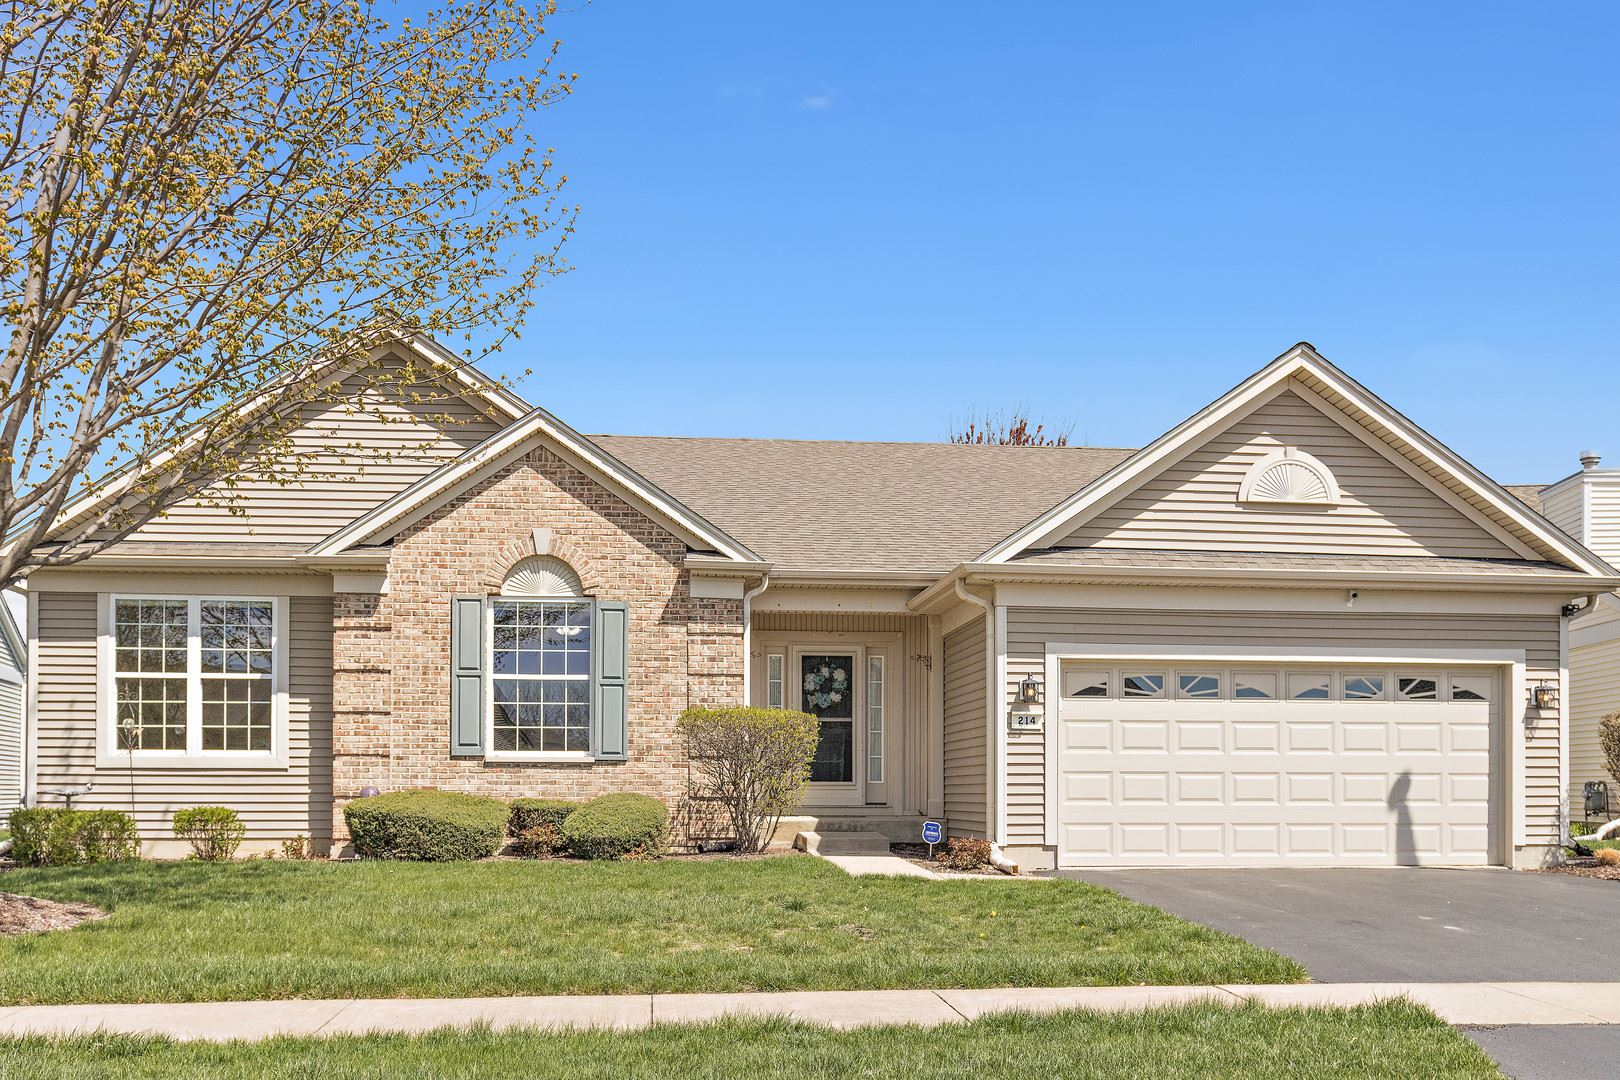 Photo of 214 HONORS Drive, Shorewood, IL 60404 (MLS # 11057122)